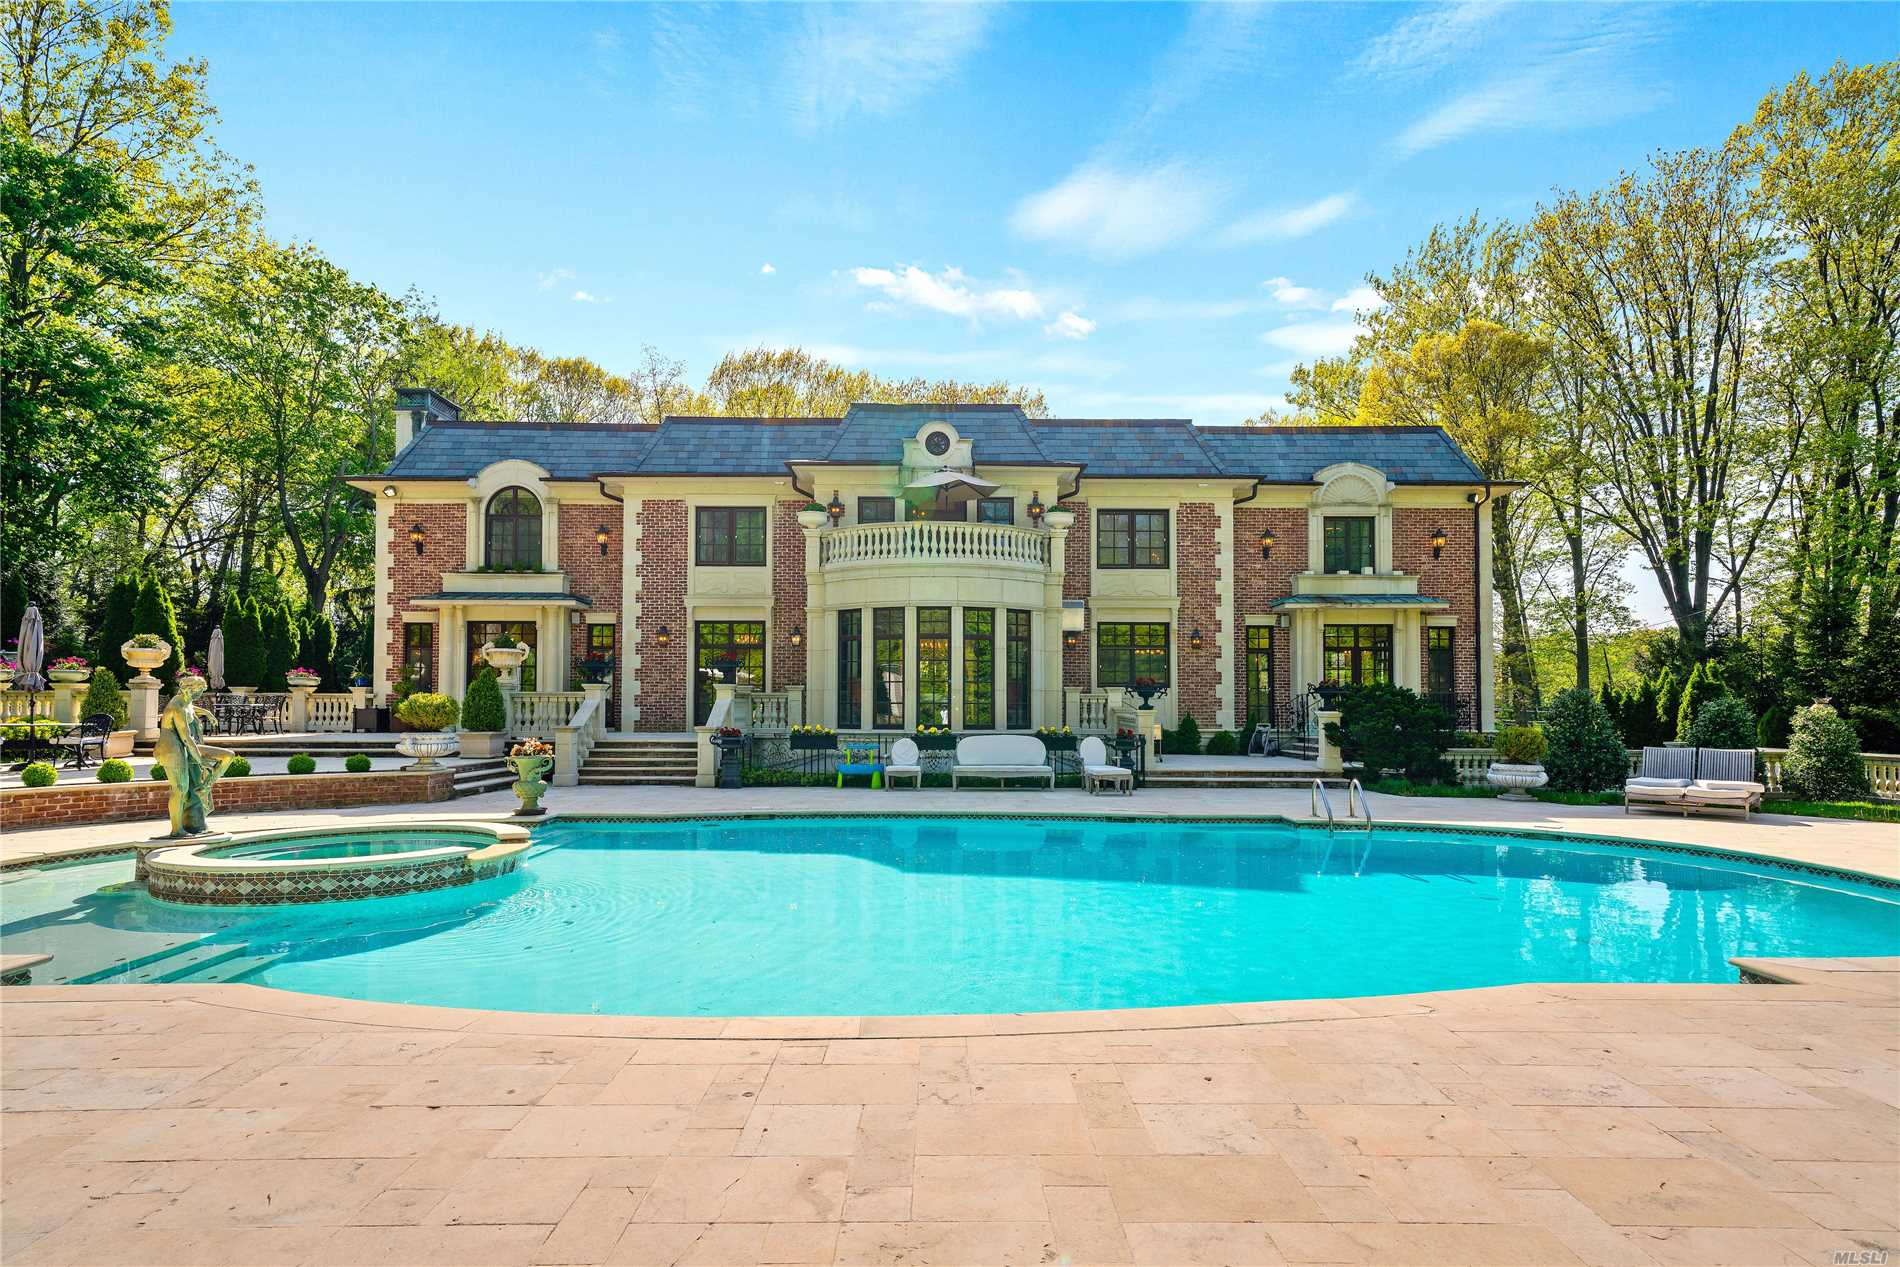 Custom built brick and stone center hall colonial situated an acre of flat property in the prestigious Village of Kings Point. The resort style grounds features a stunning pool with inset hot tub, fountains, oversized stone patio and an expansive outdoor kitchen. The home's interior boasts the highest quality finishes and craftsmanship.